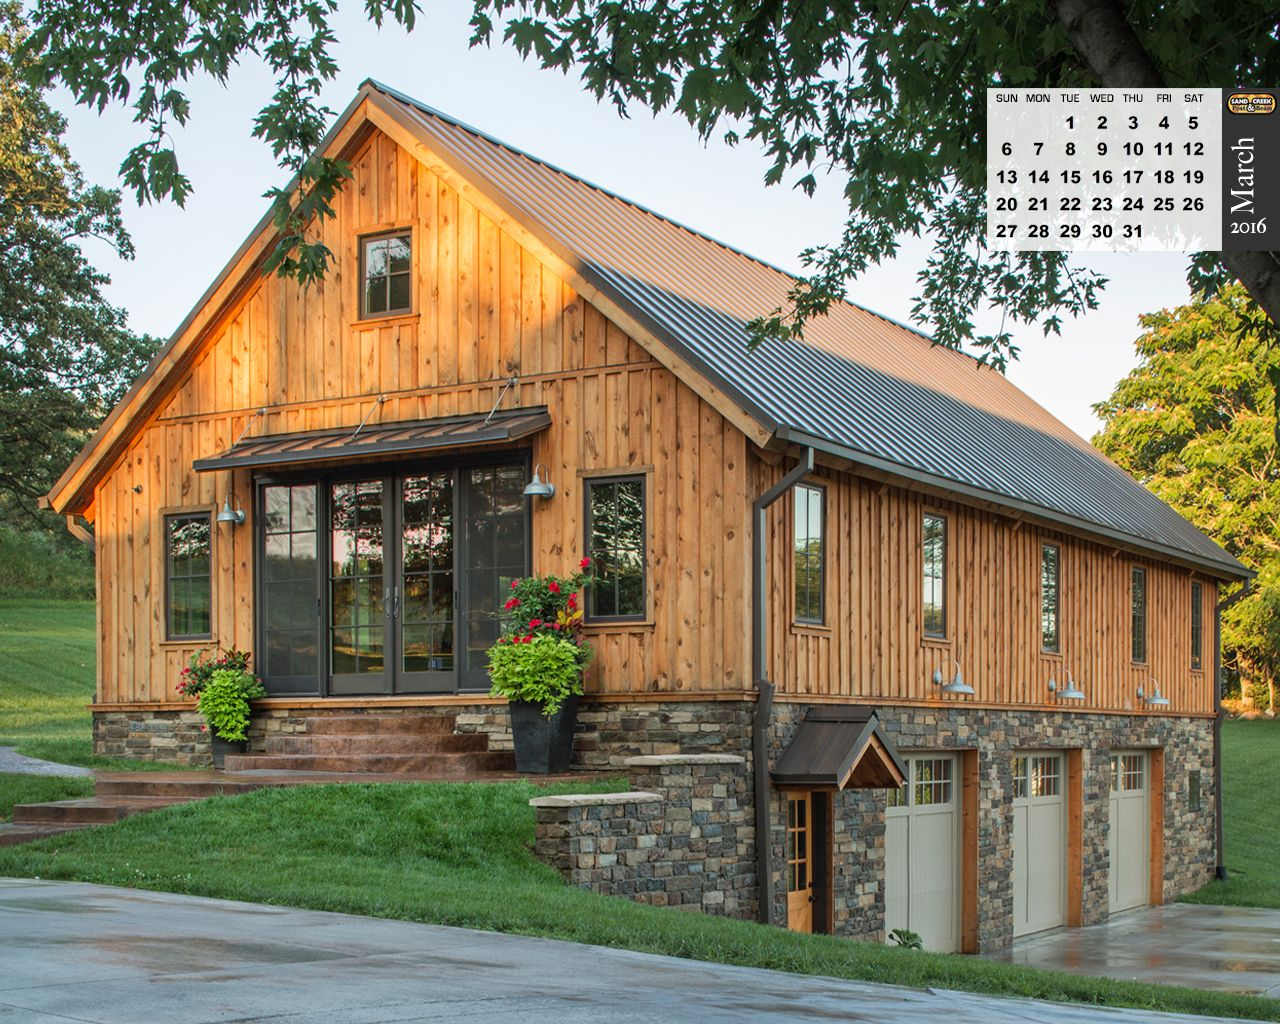 Barn wood home projects photo galleries ponderosa for Wood barn homes